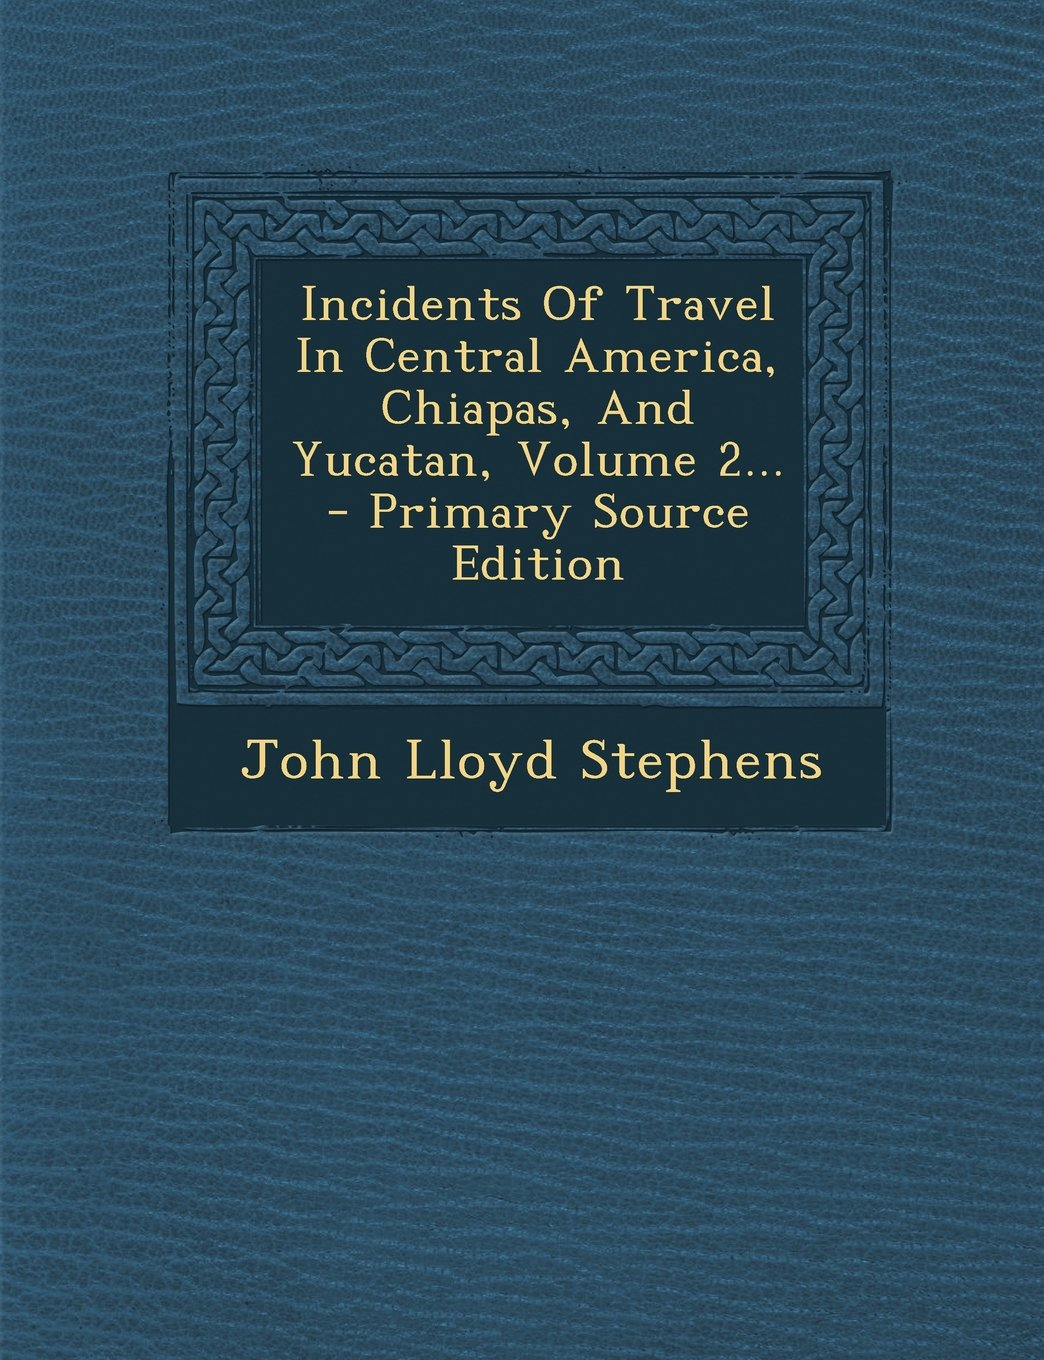 Download Incidents Of Travel In Central America, Chiapas, And Yucatan, Volume 2... ebook